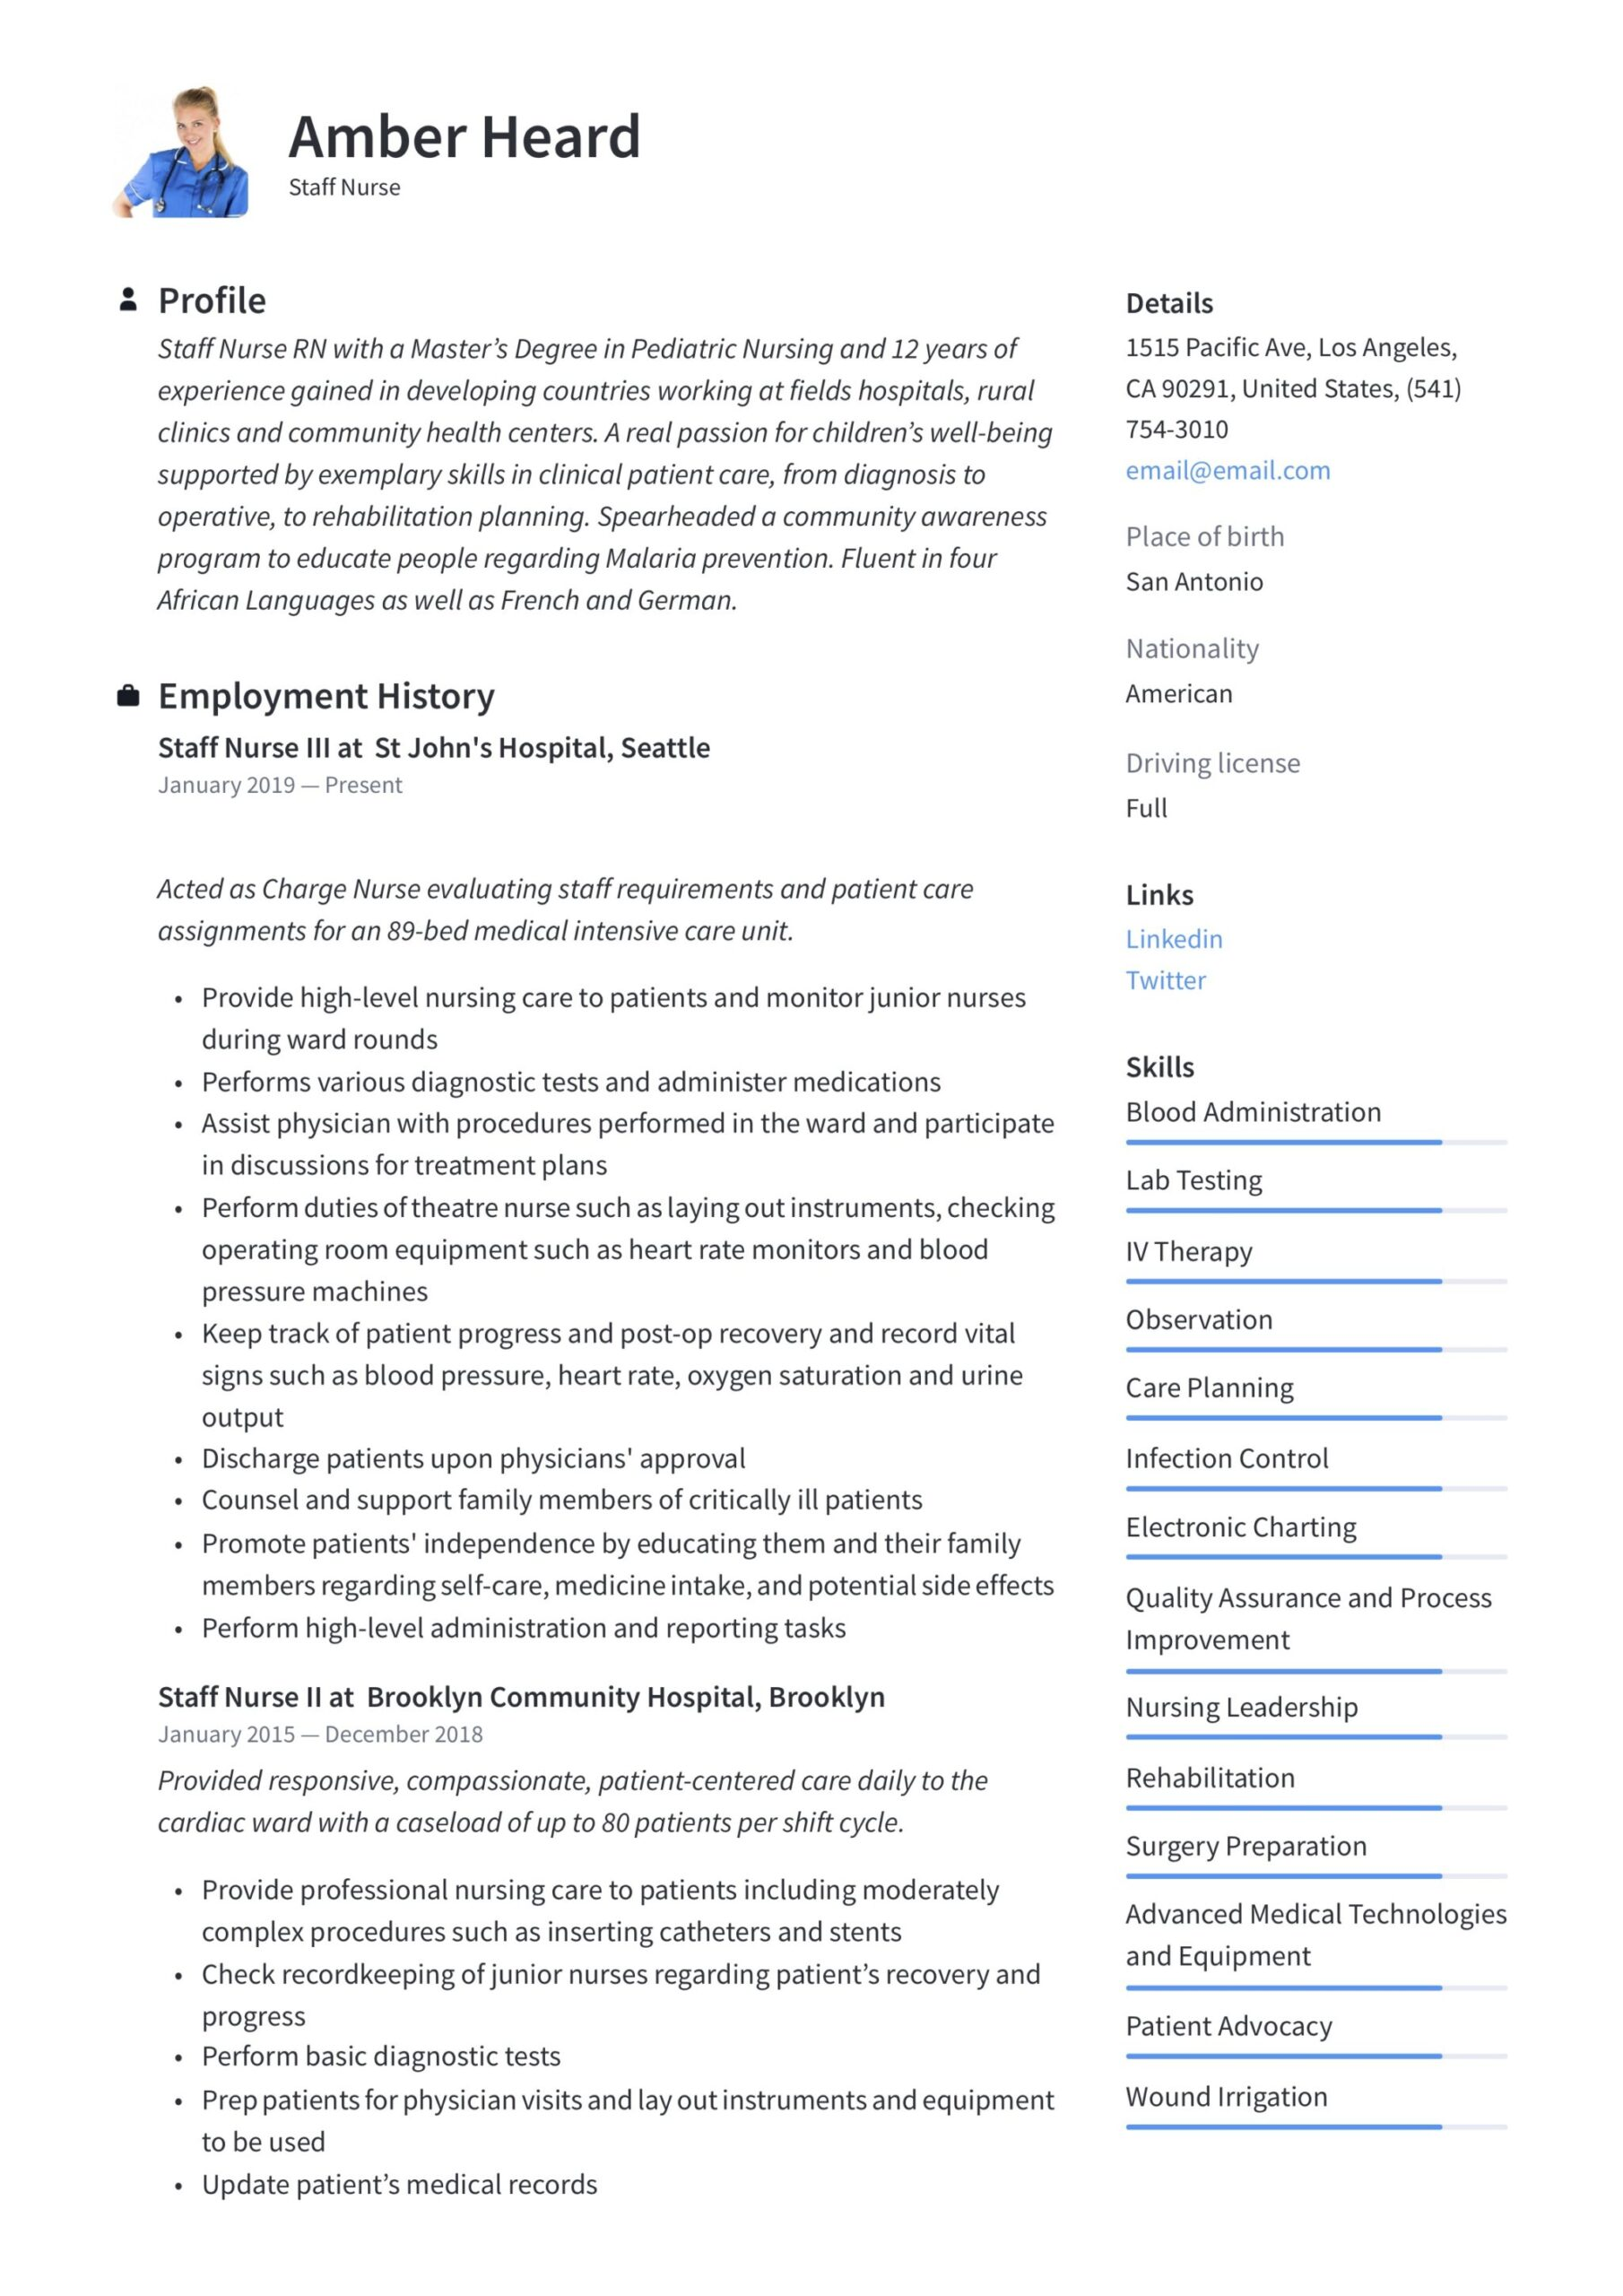 staff nurse resume writing guide templates in pdf format nursing goals and objectives for Resume Nursing Goals And Objectives For Resume